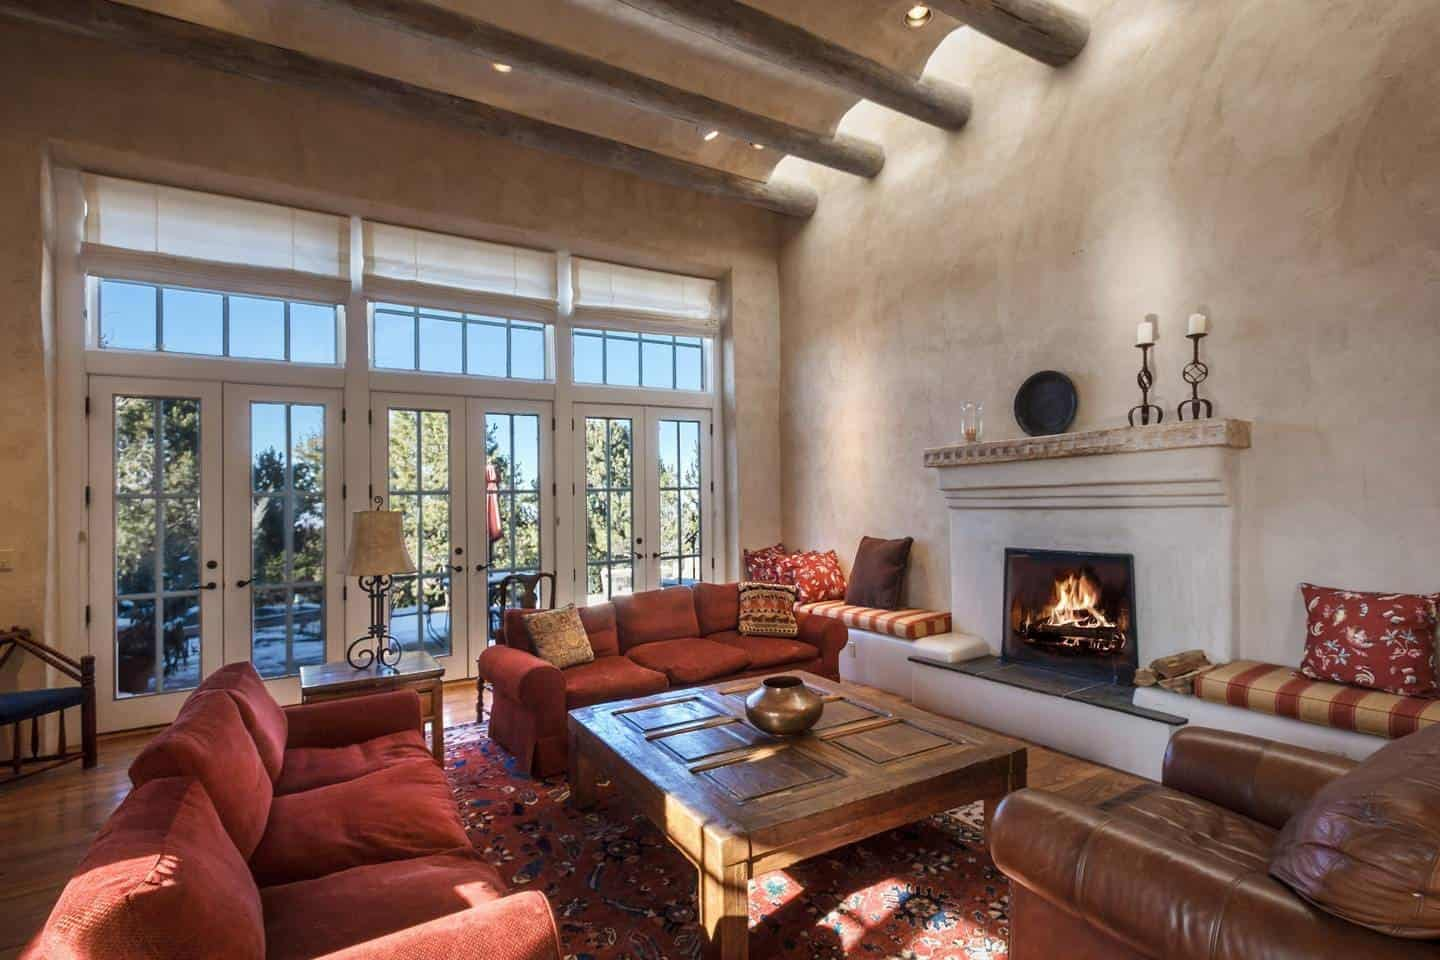 Image of Airbnb rental in Santa Fe